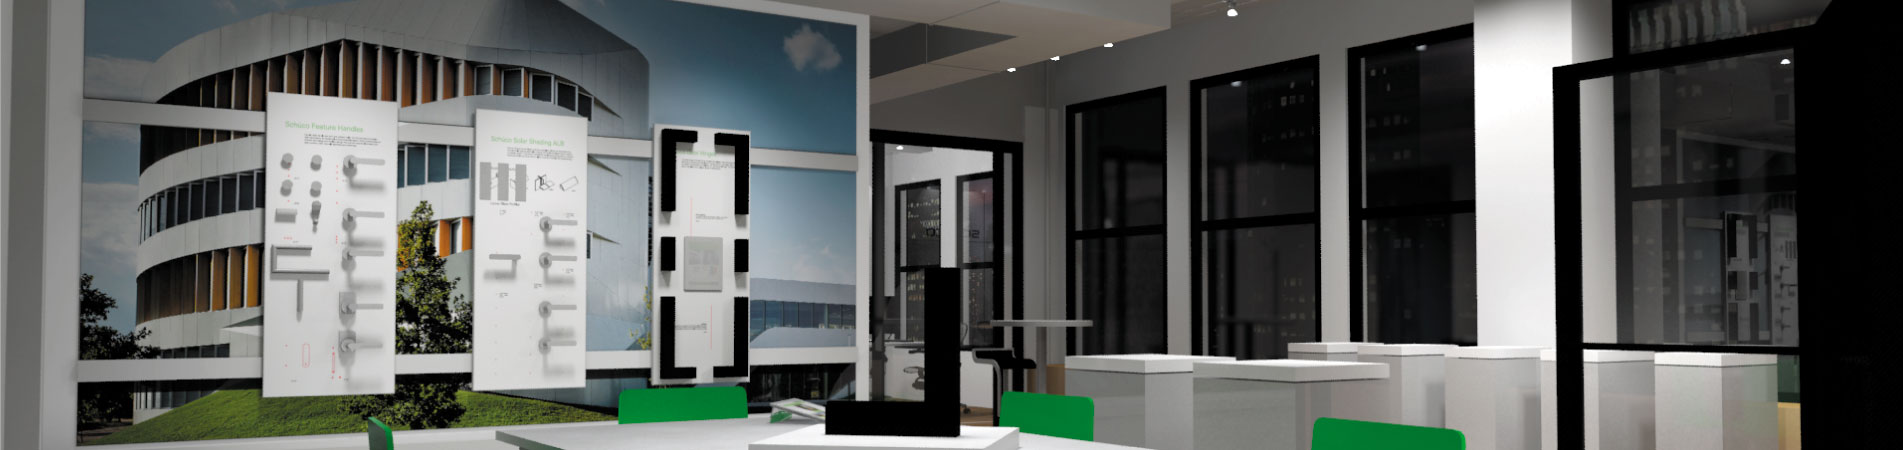 Corporate Environments - Training Rooms - Showrooms | DisplayCraft